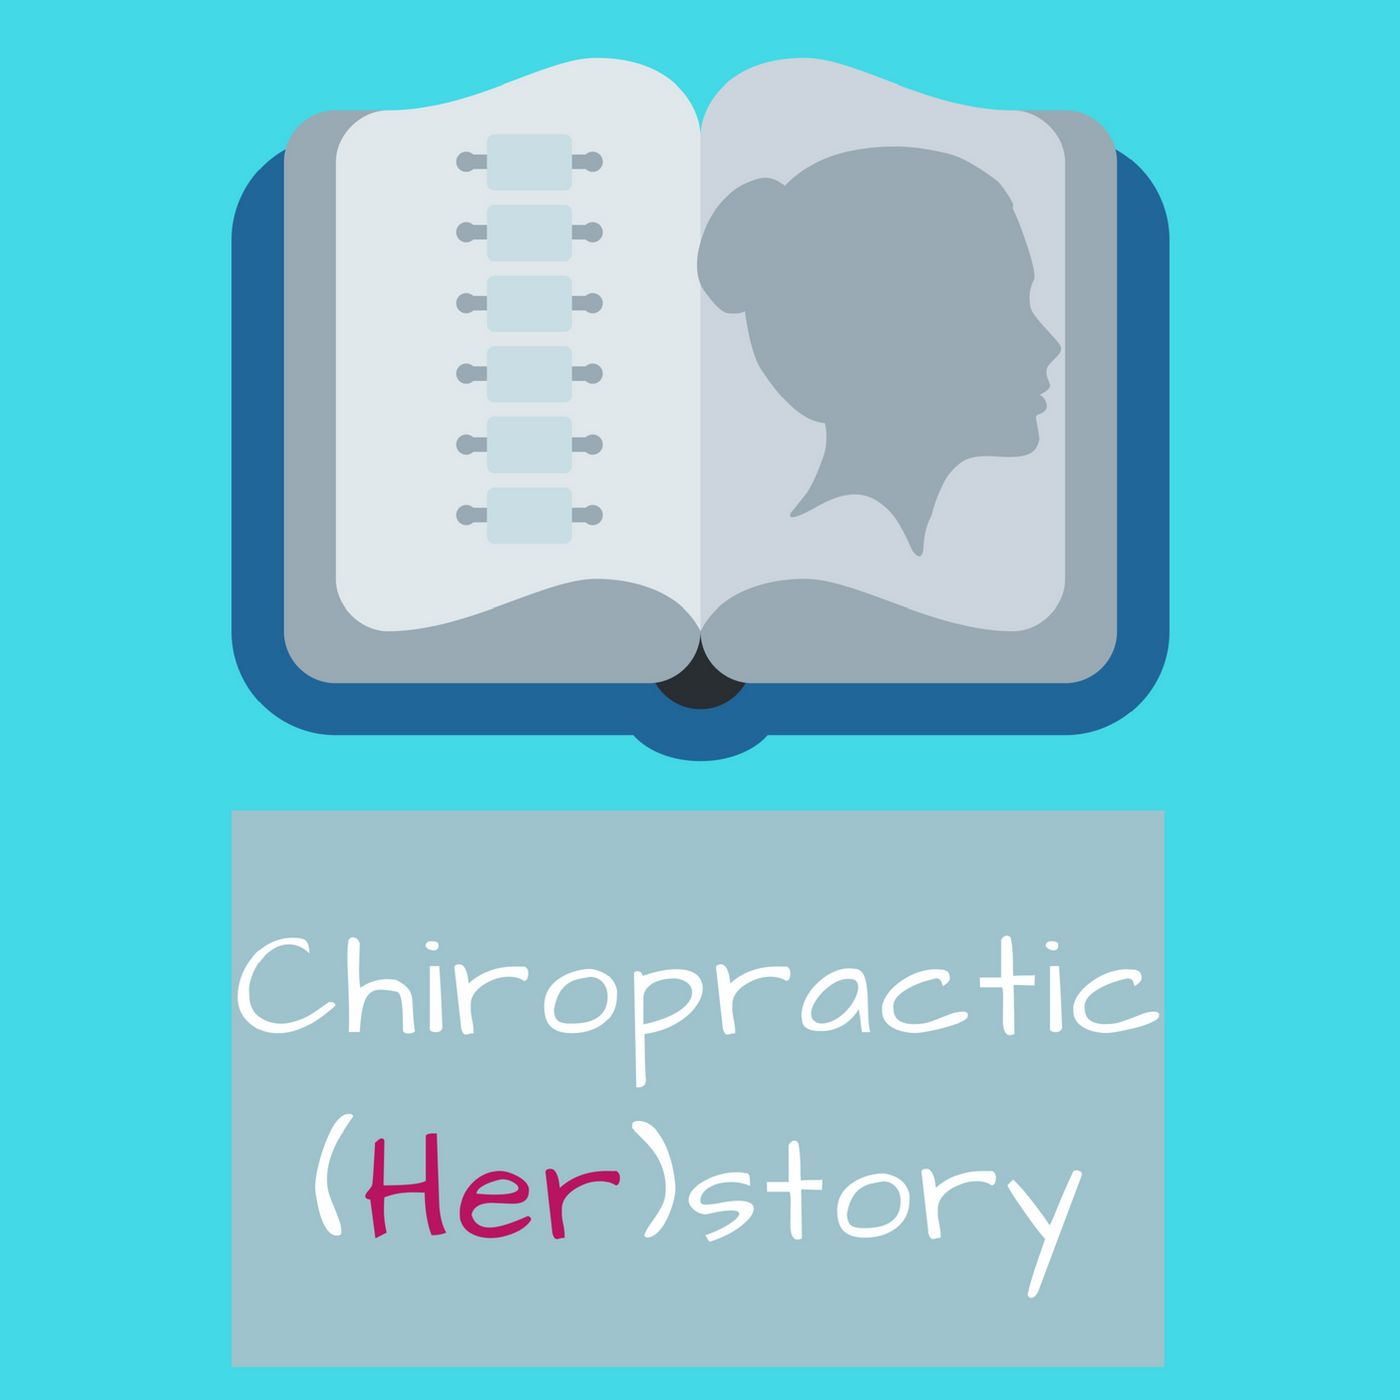 Chiropractic Herstory Podcast